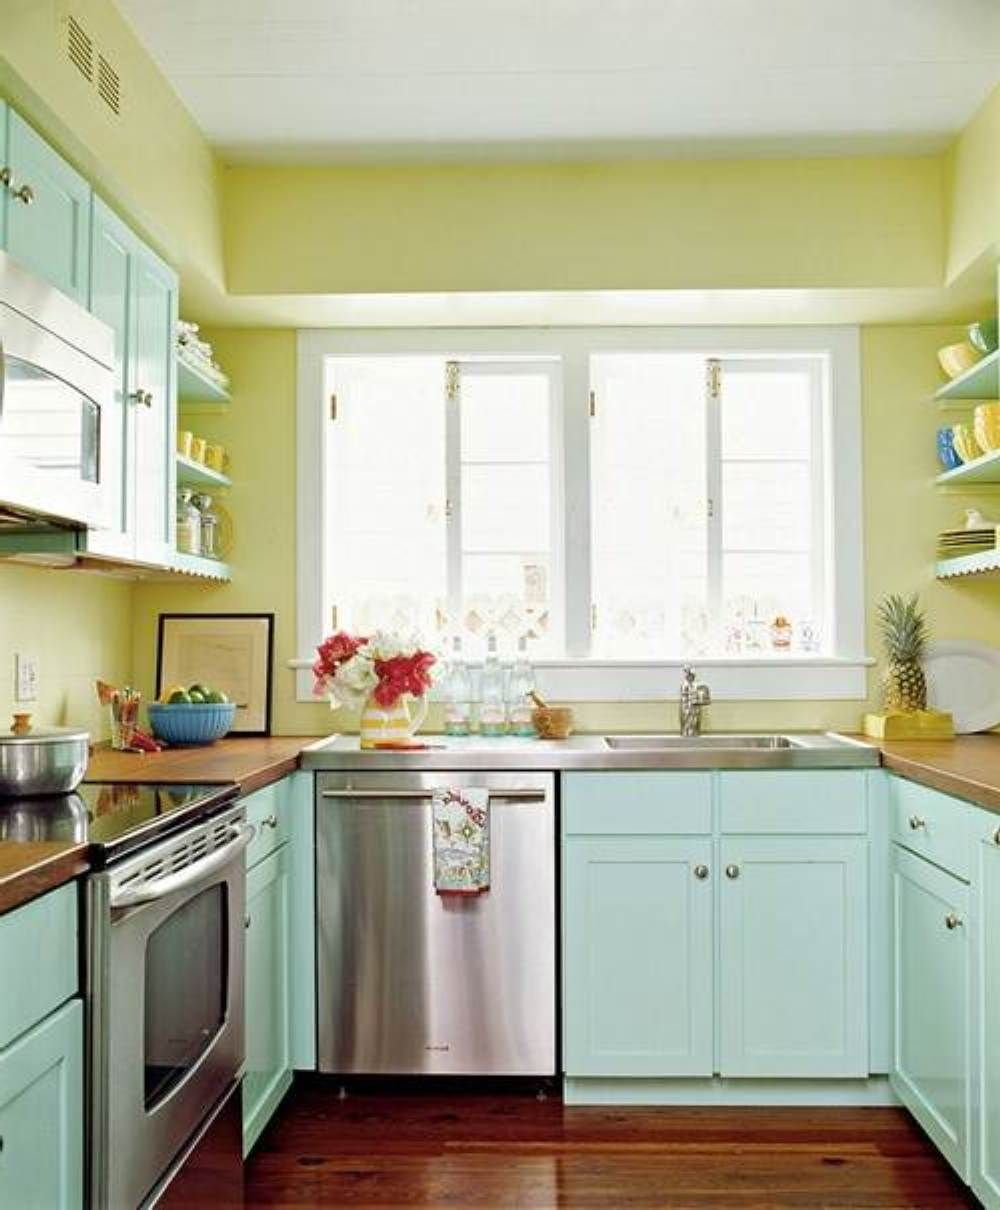 Best paint for kitchen cabinets white vegrecipes home decoration